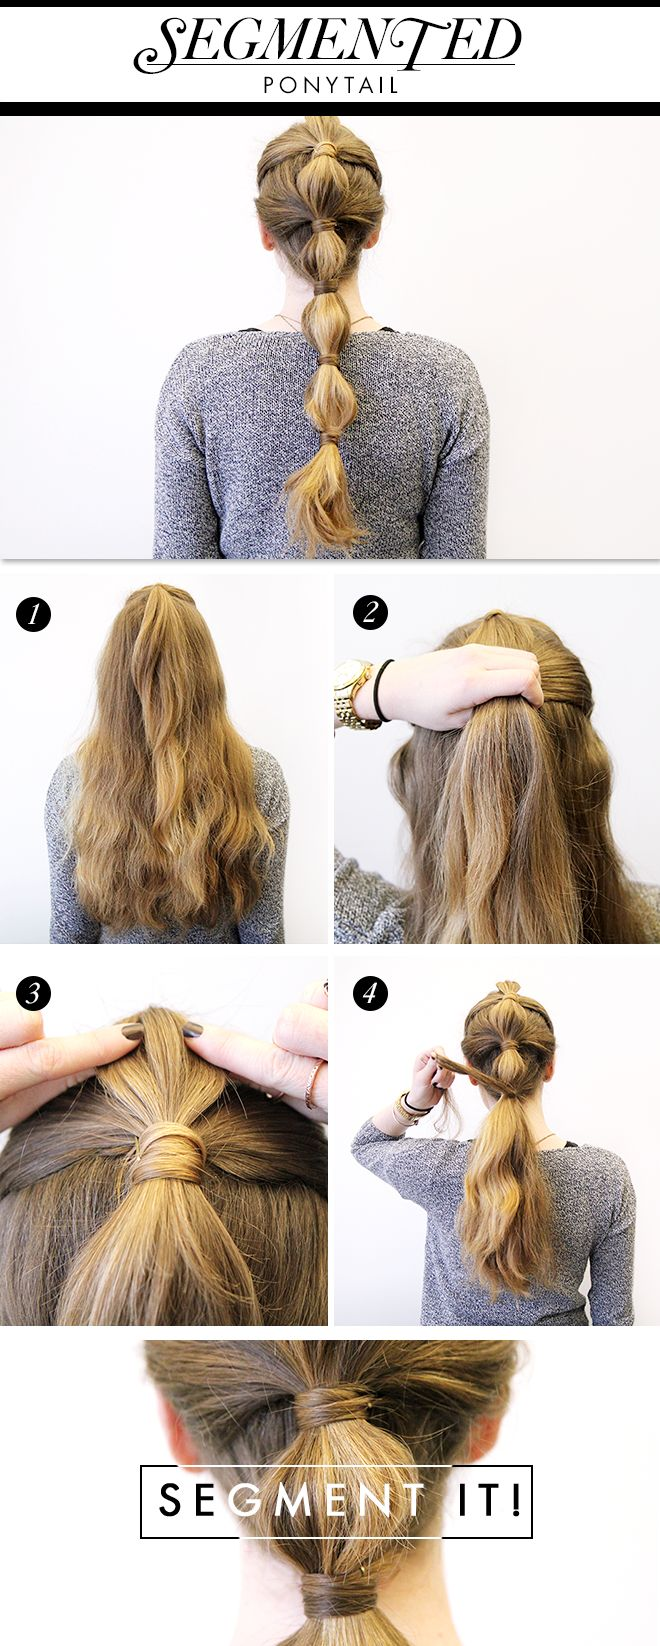 Holiday Hair: 3 Party Ponytails You Can DIY At Home - Daily Makeover